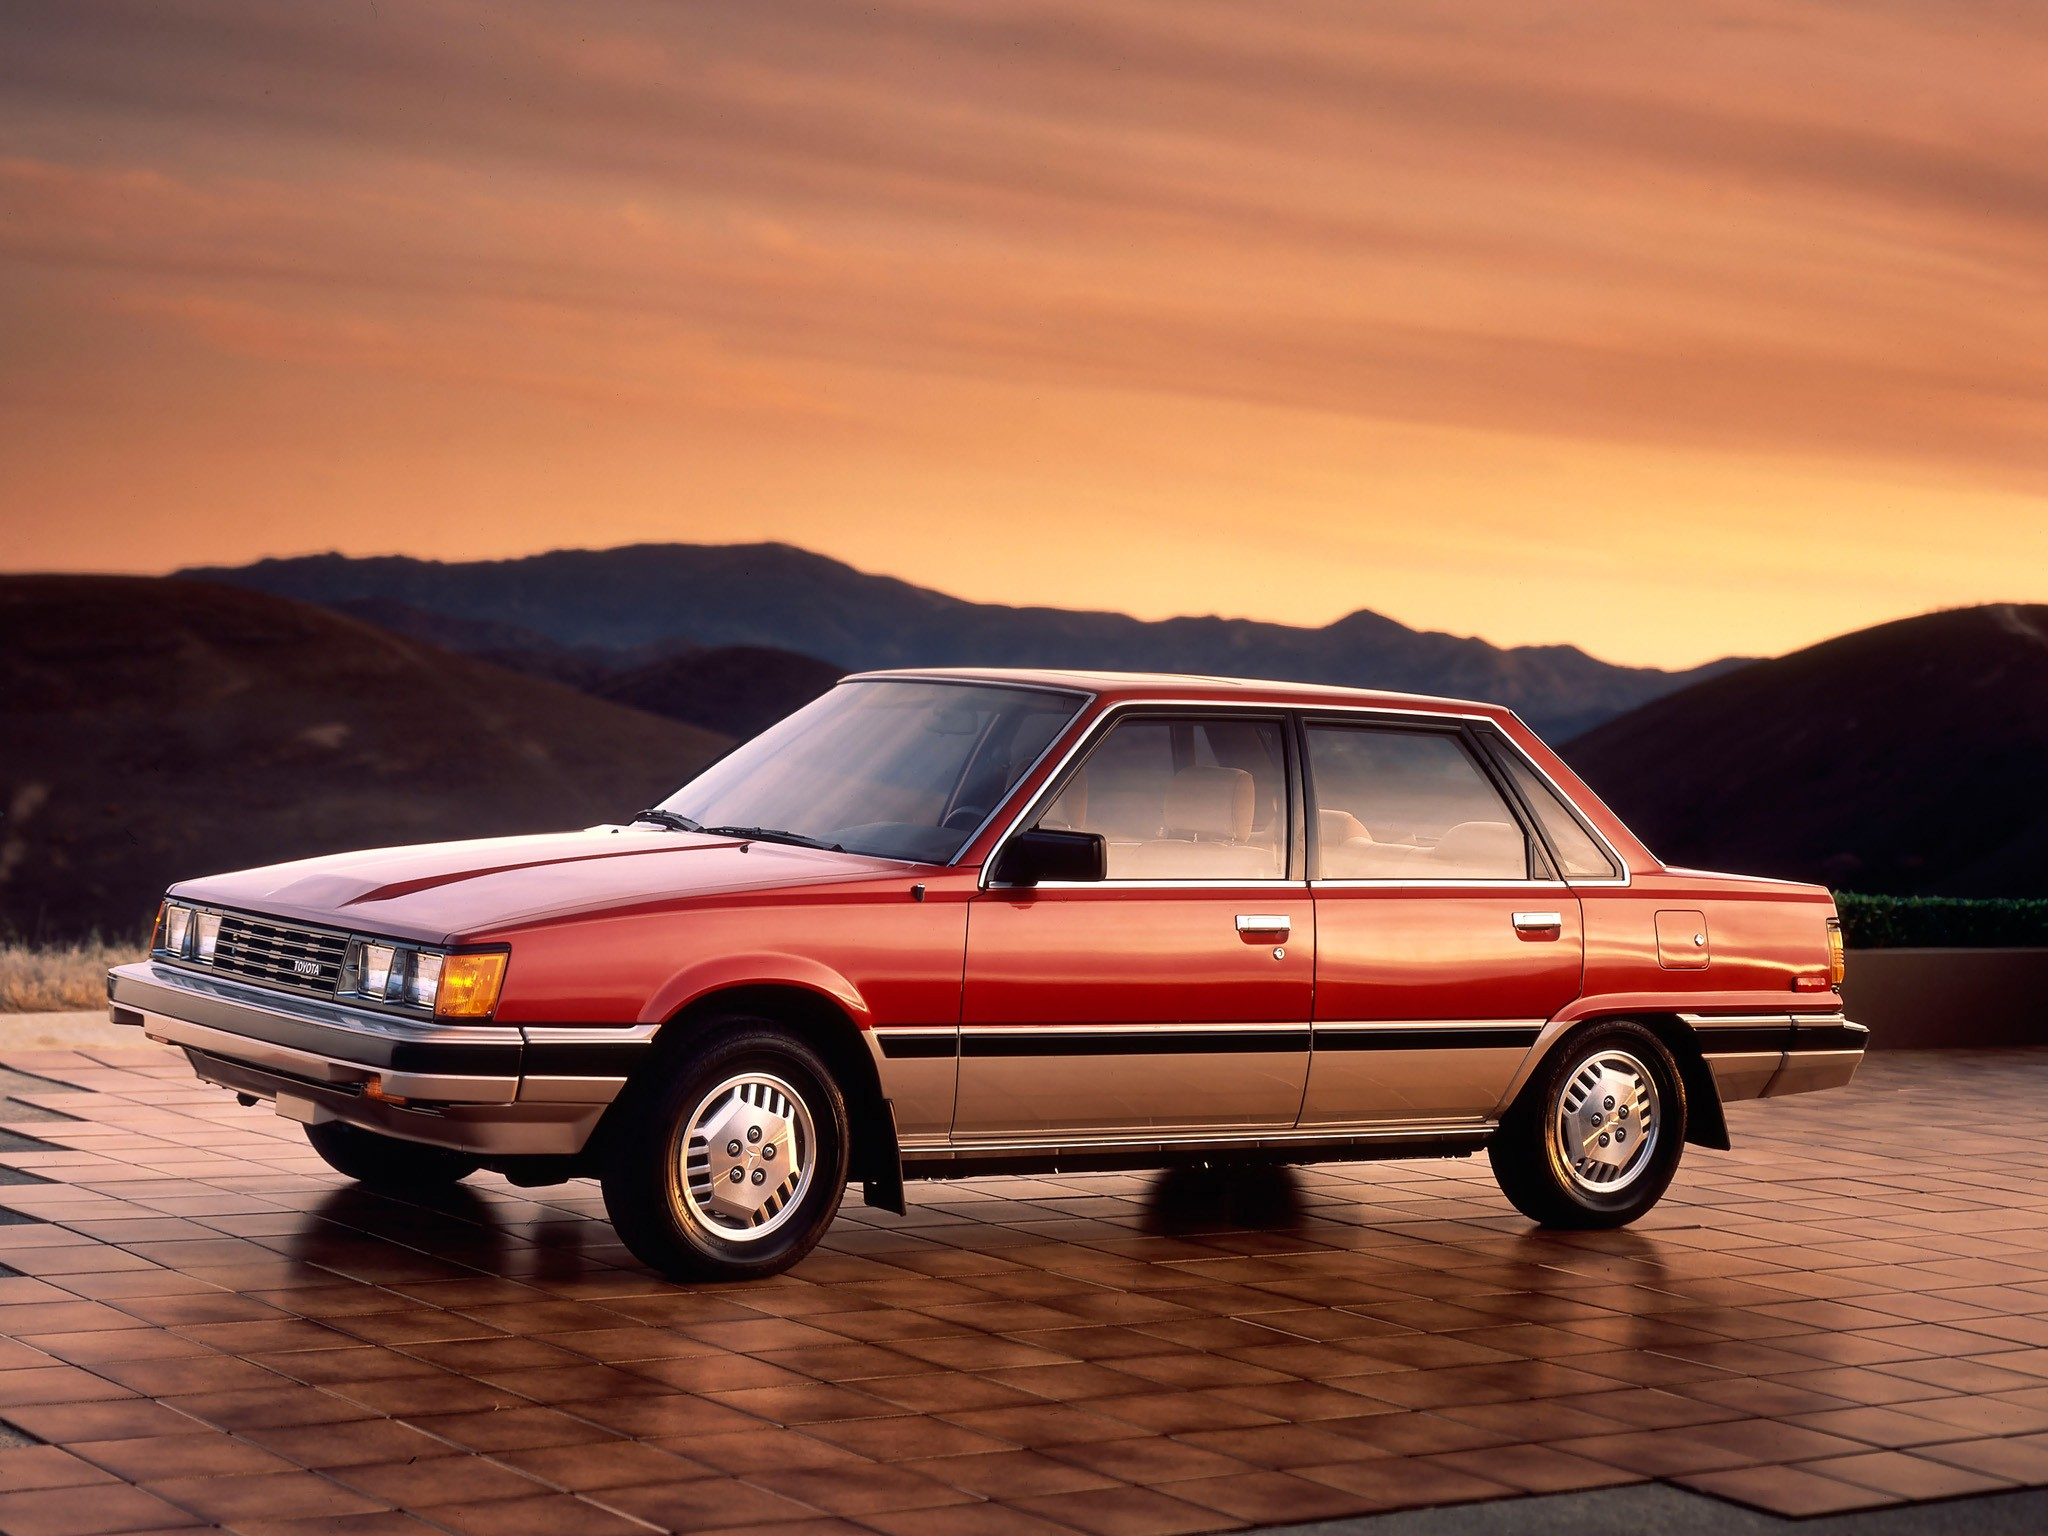 1984 Ford Mustang >> TOYOTA Camry specs & photos - 1983, 1984, 1985, 1986, 1987 ...